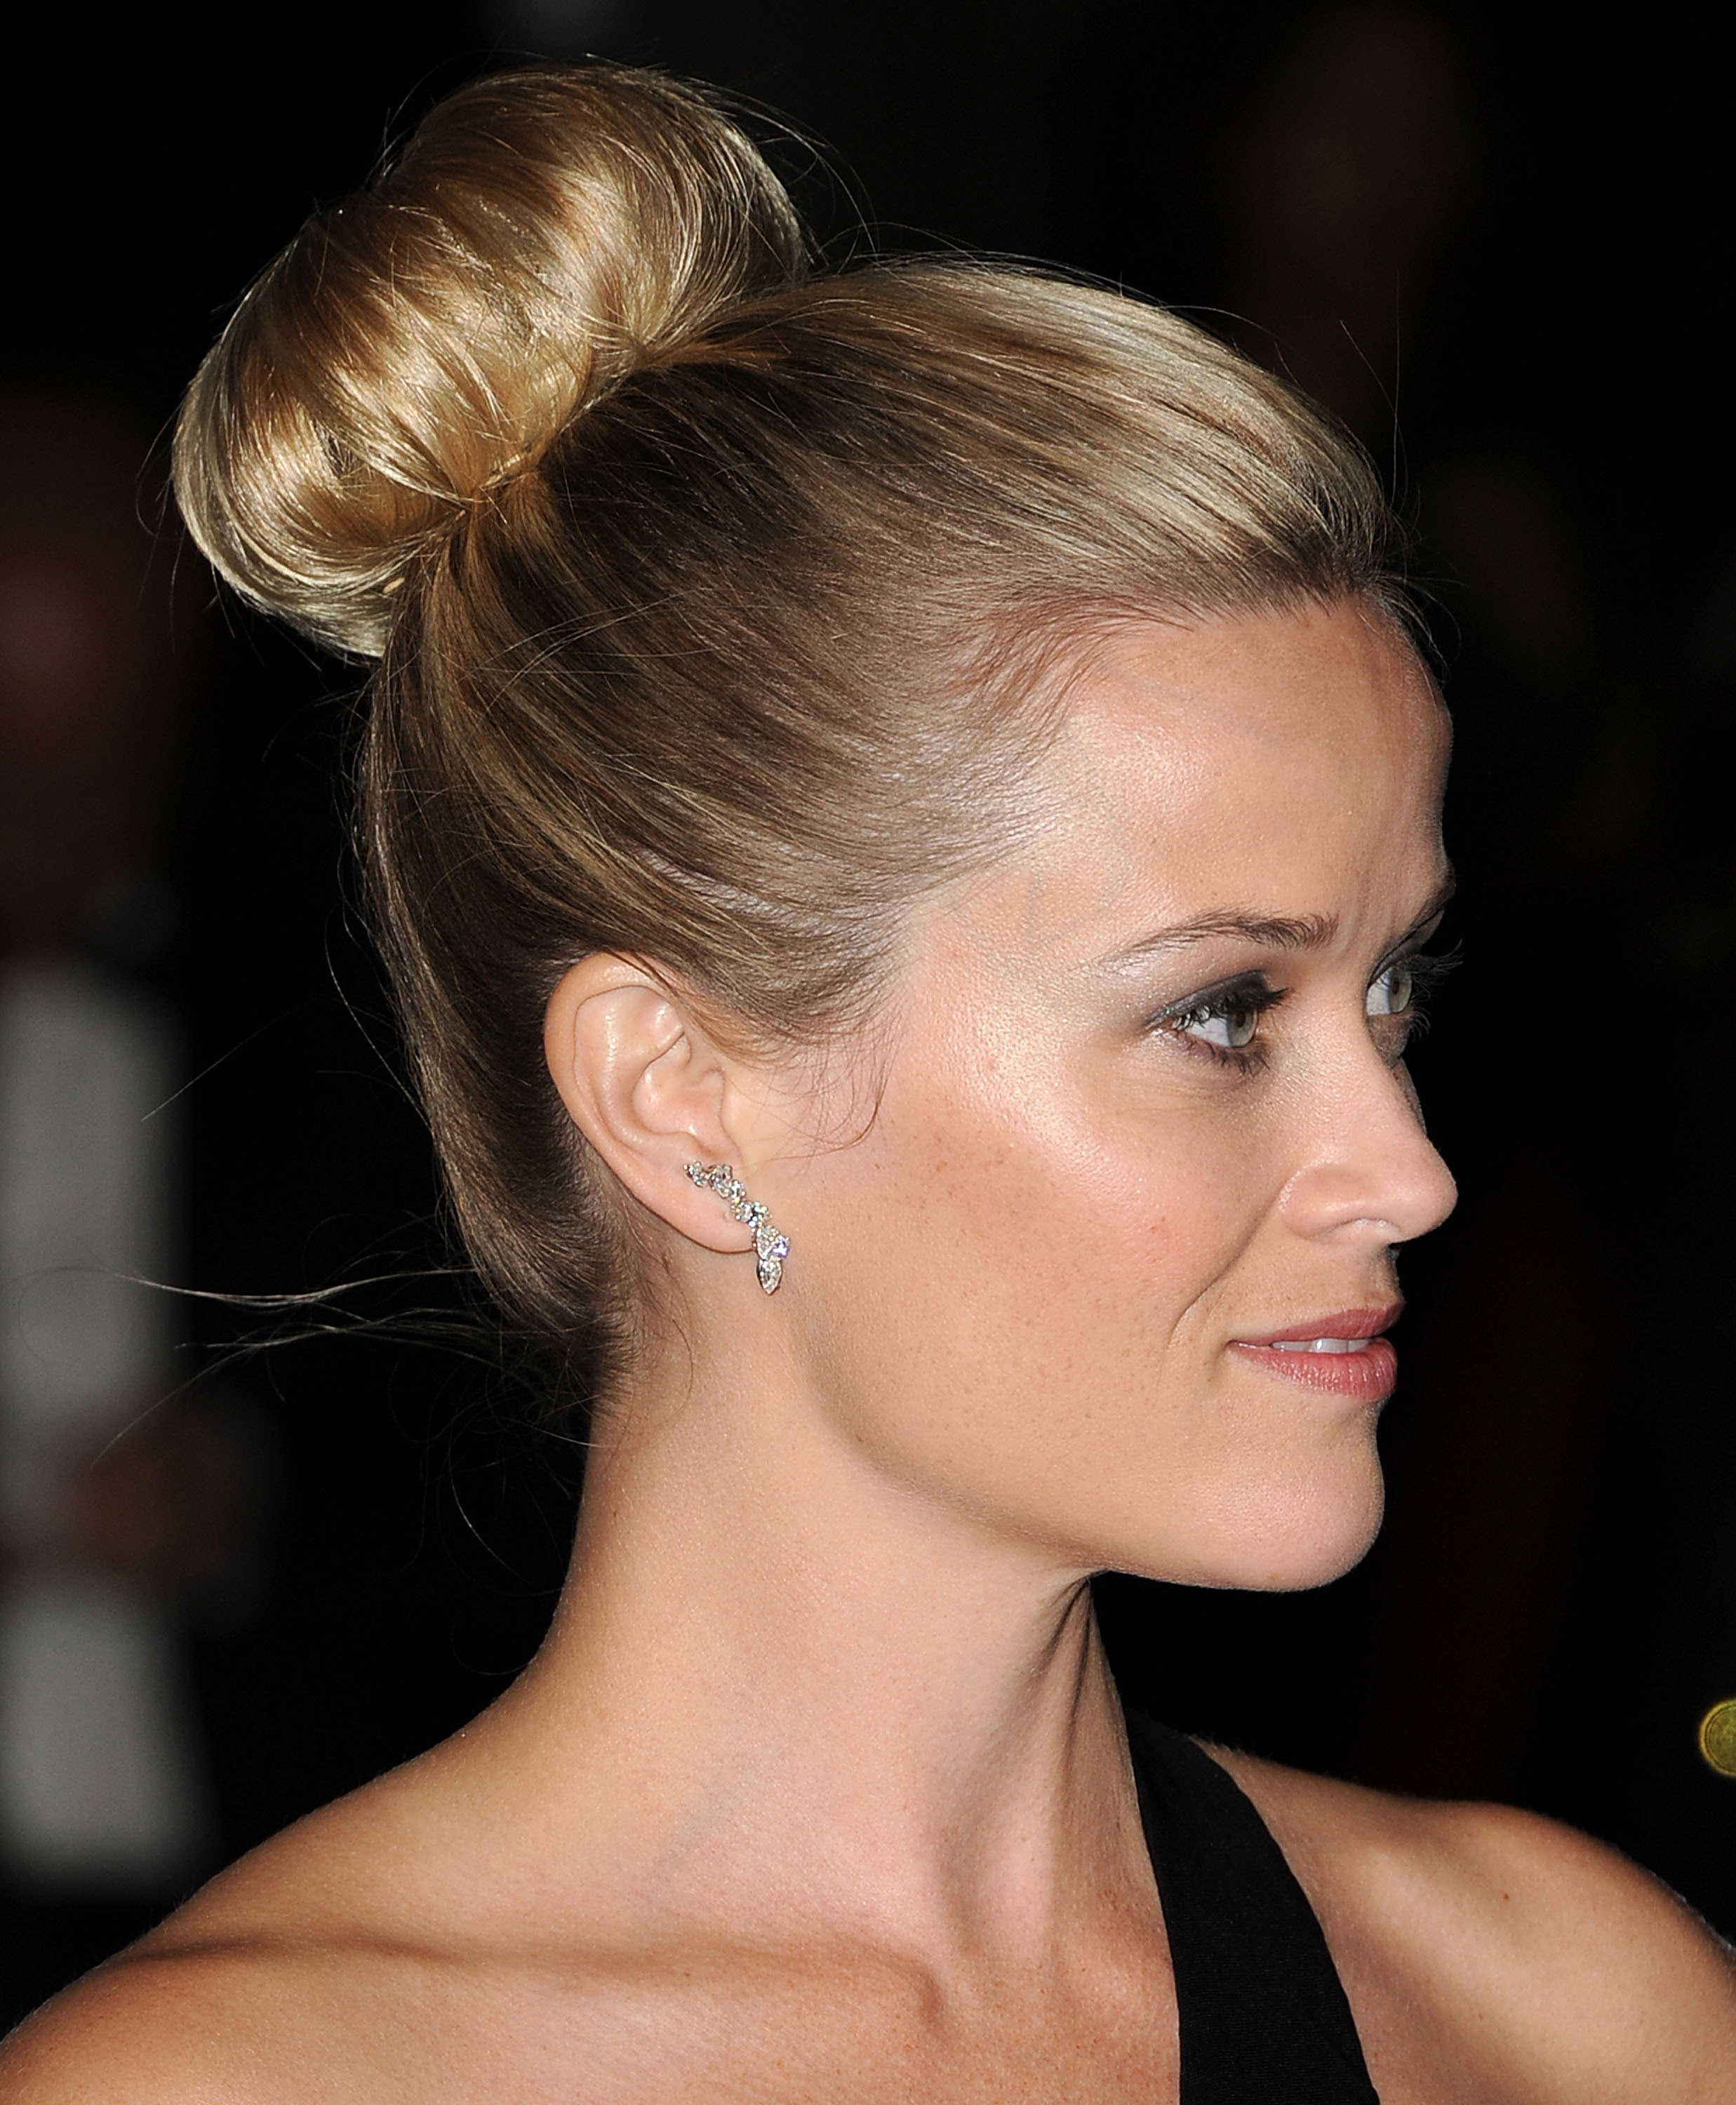 Reese Witherspoon with her hair in a big bun.